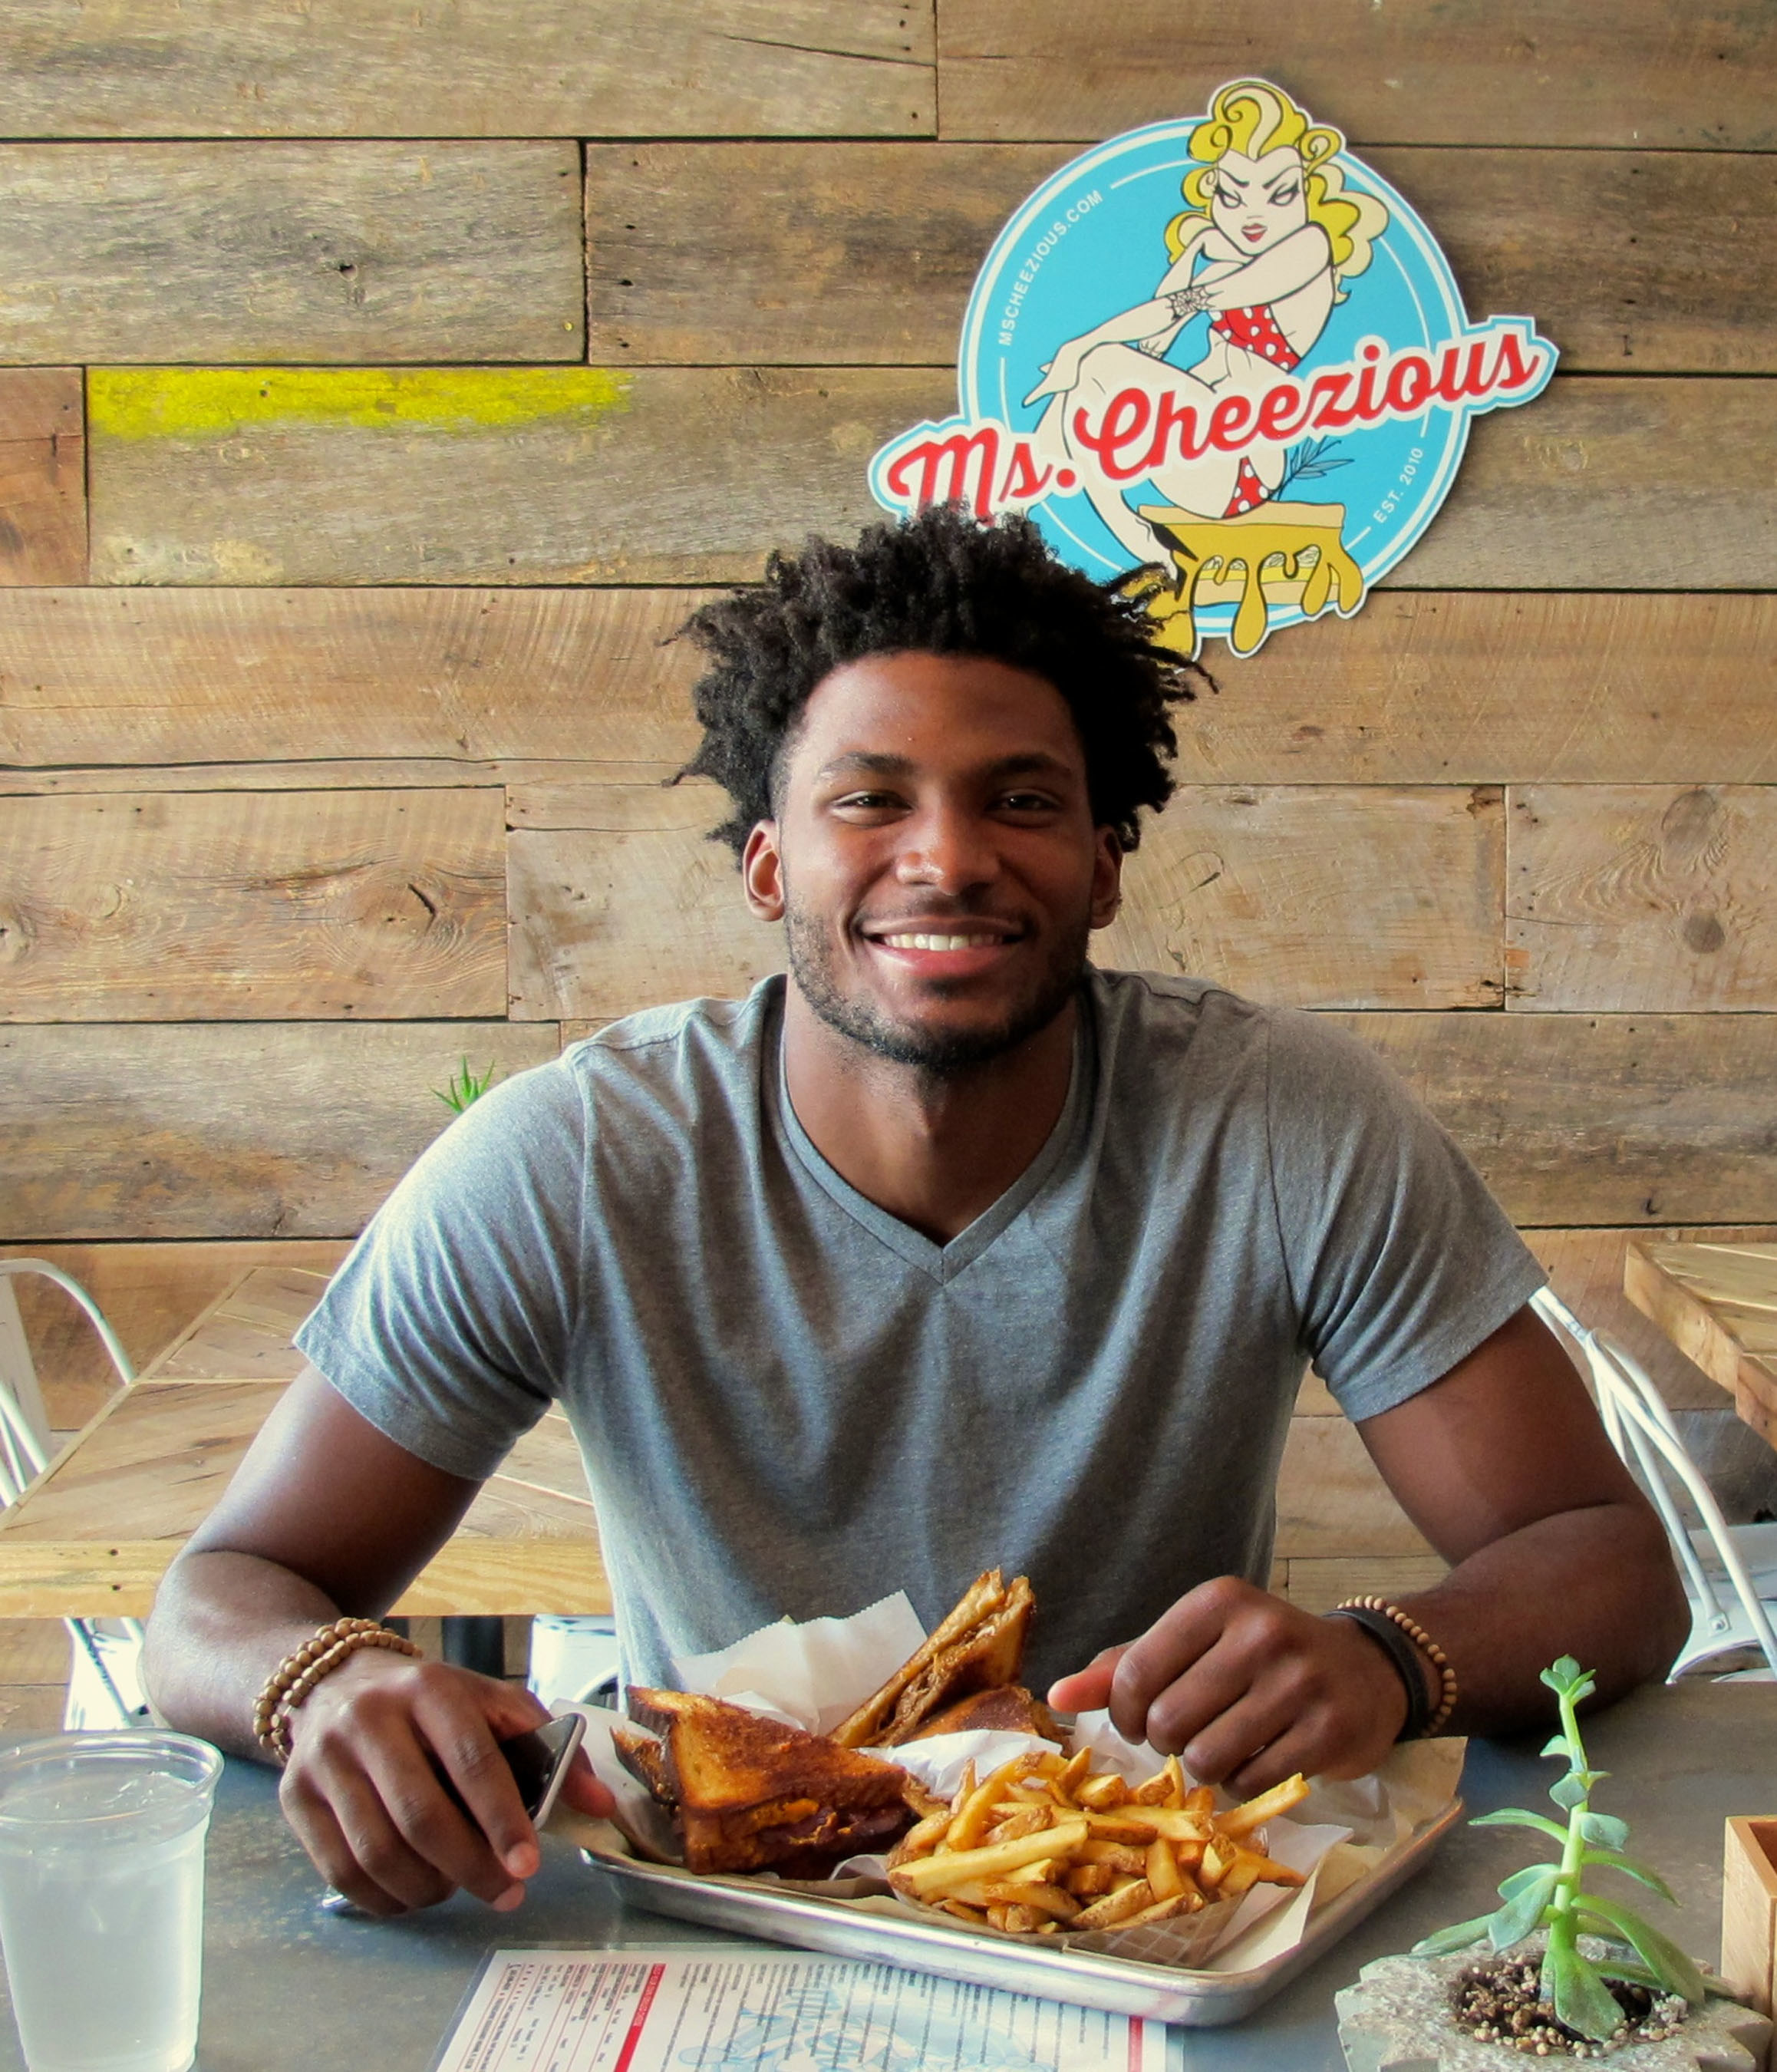 Miami Heat's Justise Winslow Officially Joins the Ms. Cheezious(TM) Family